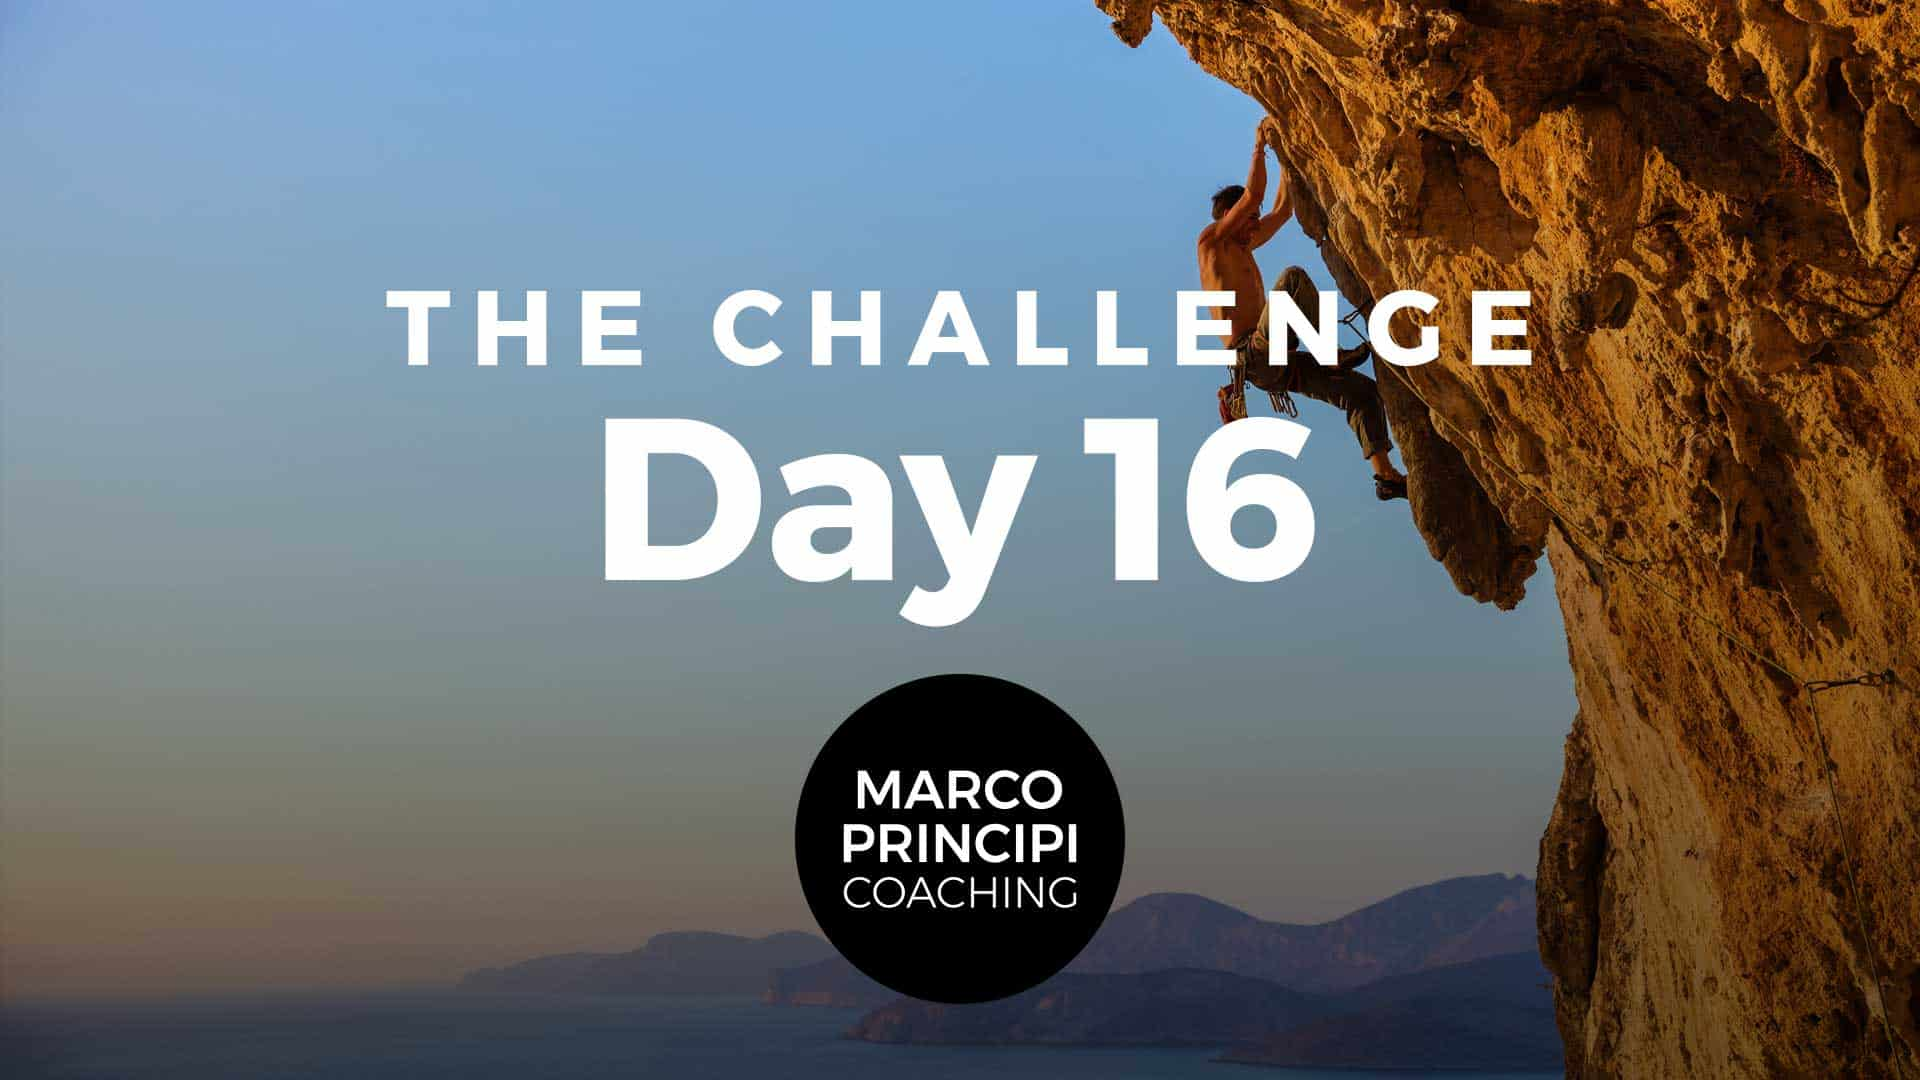 Marco Principi YT Cover The Challenge Day 016